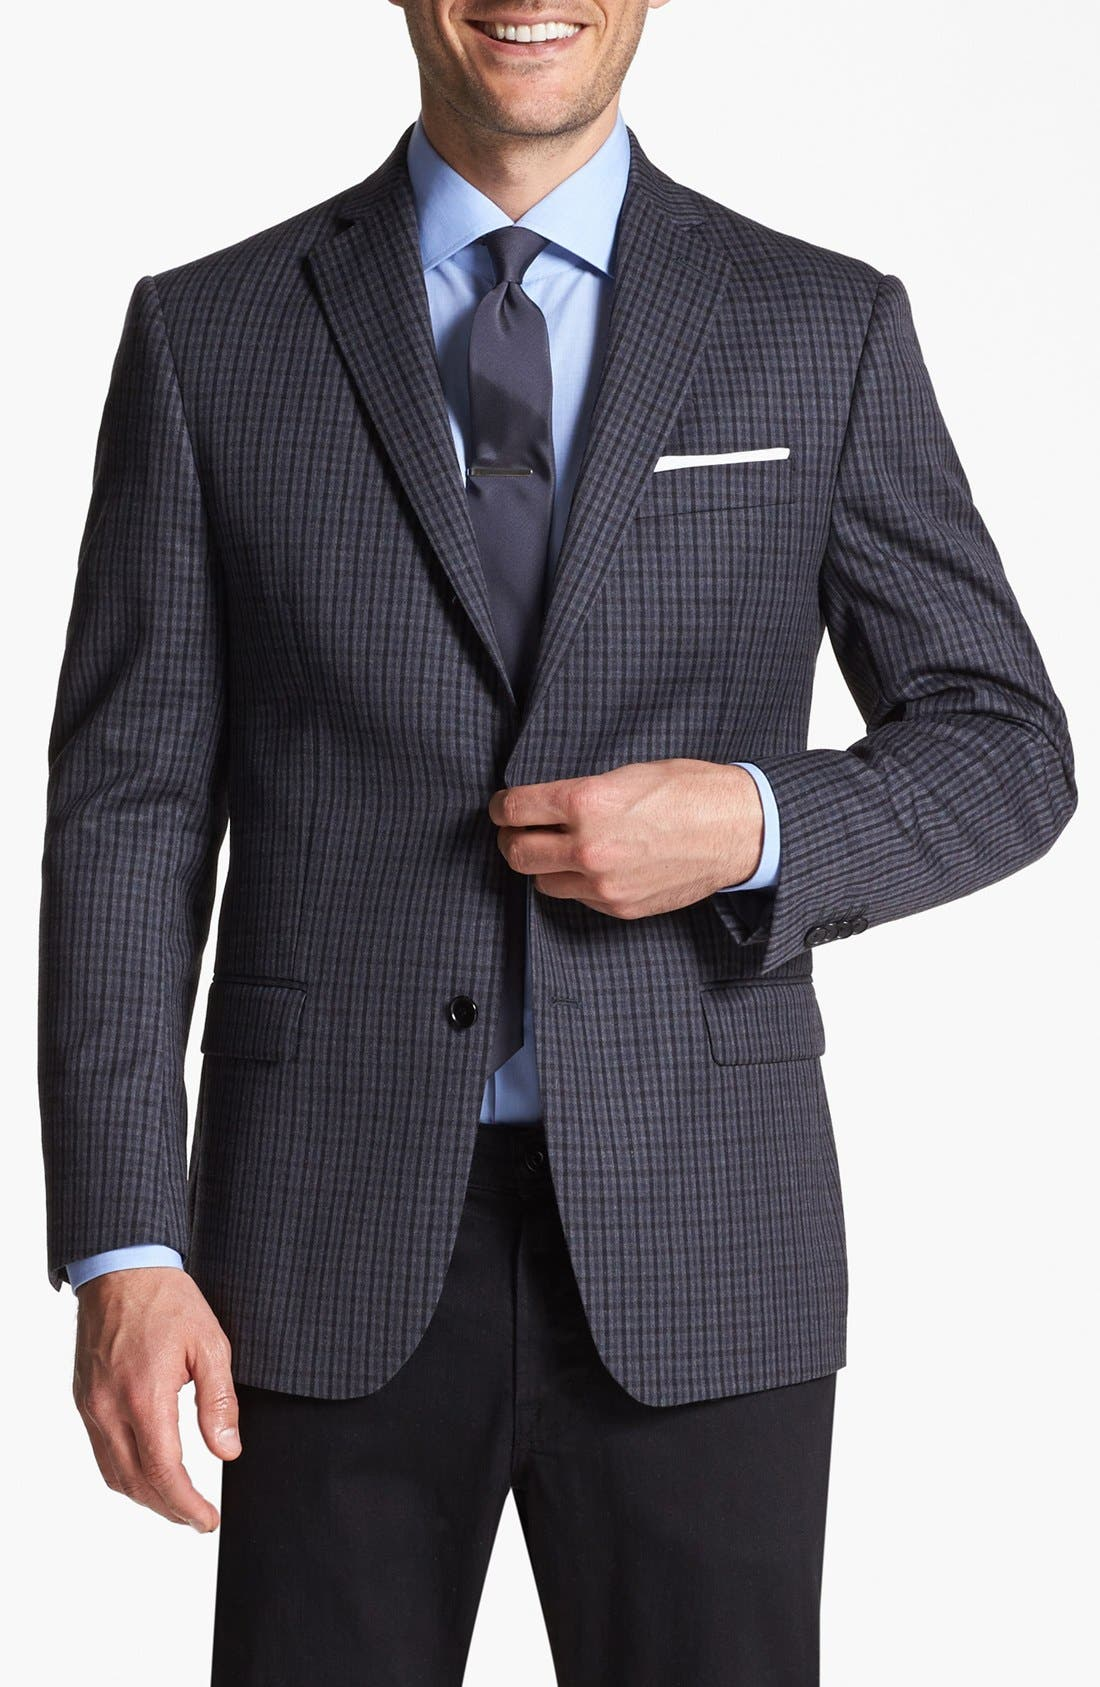 Main Image - Michael Kors Trim Fit Plaid Sportcoat